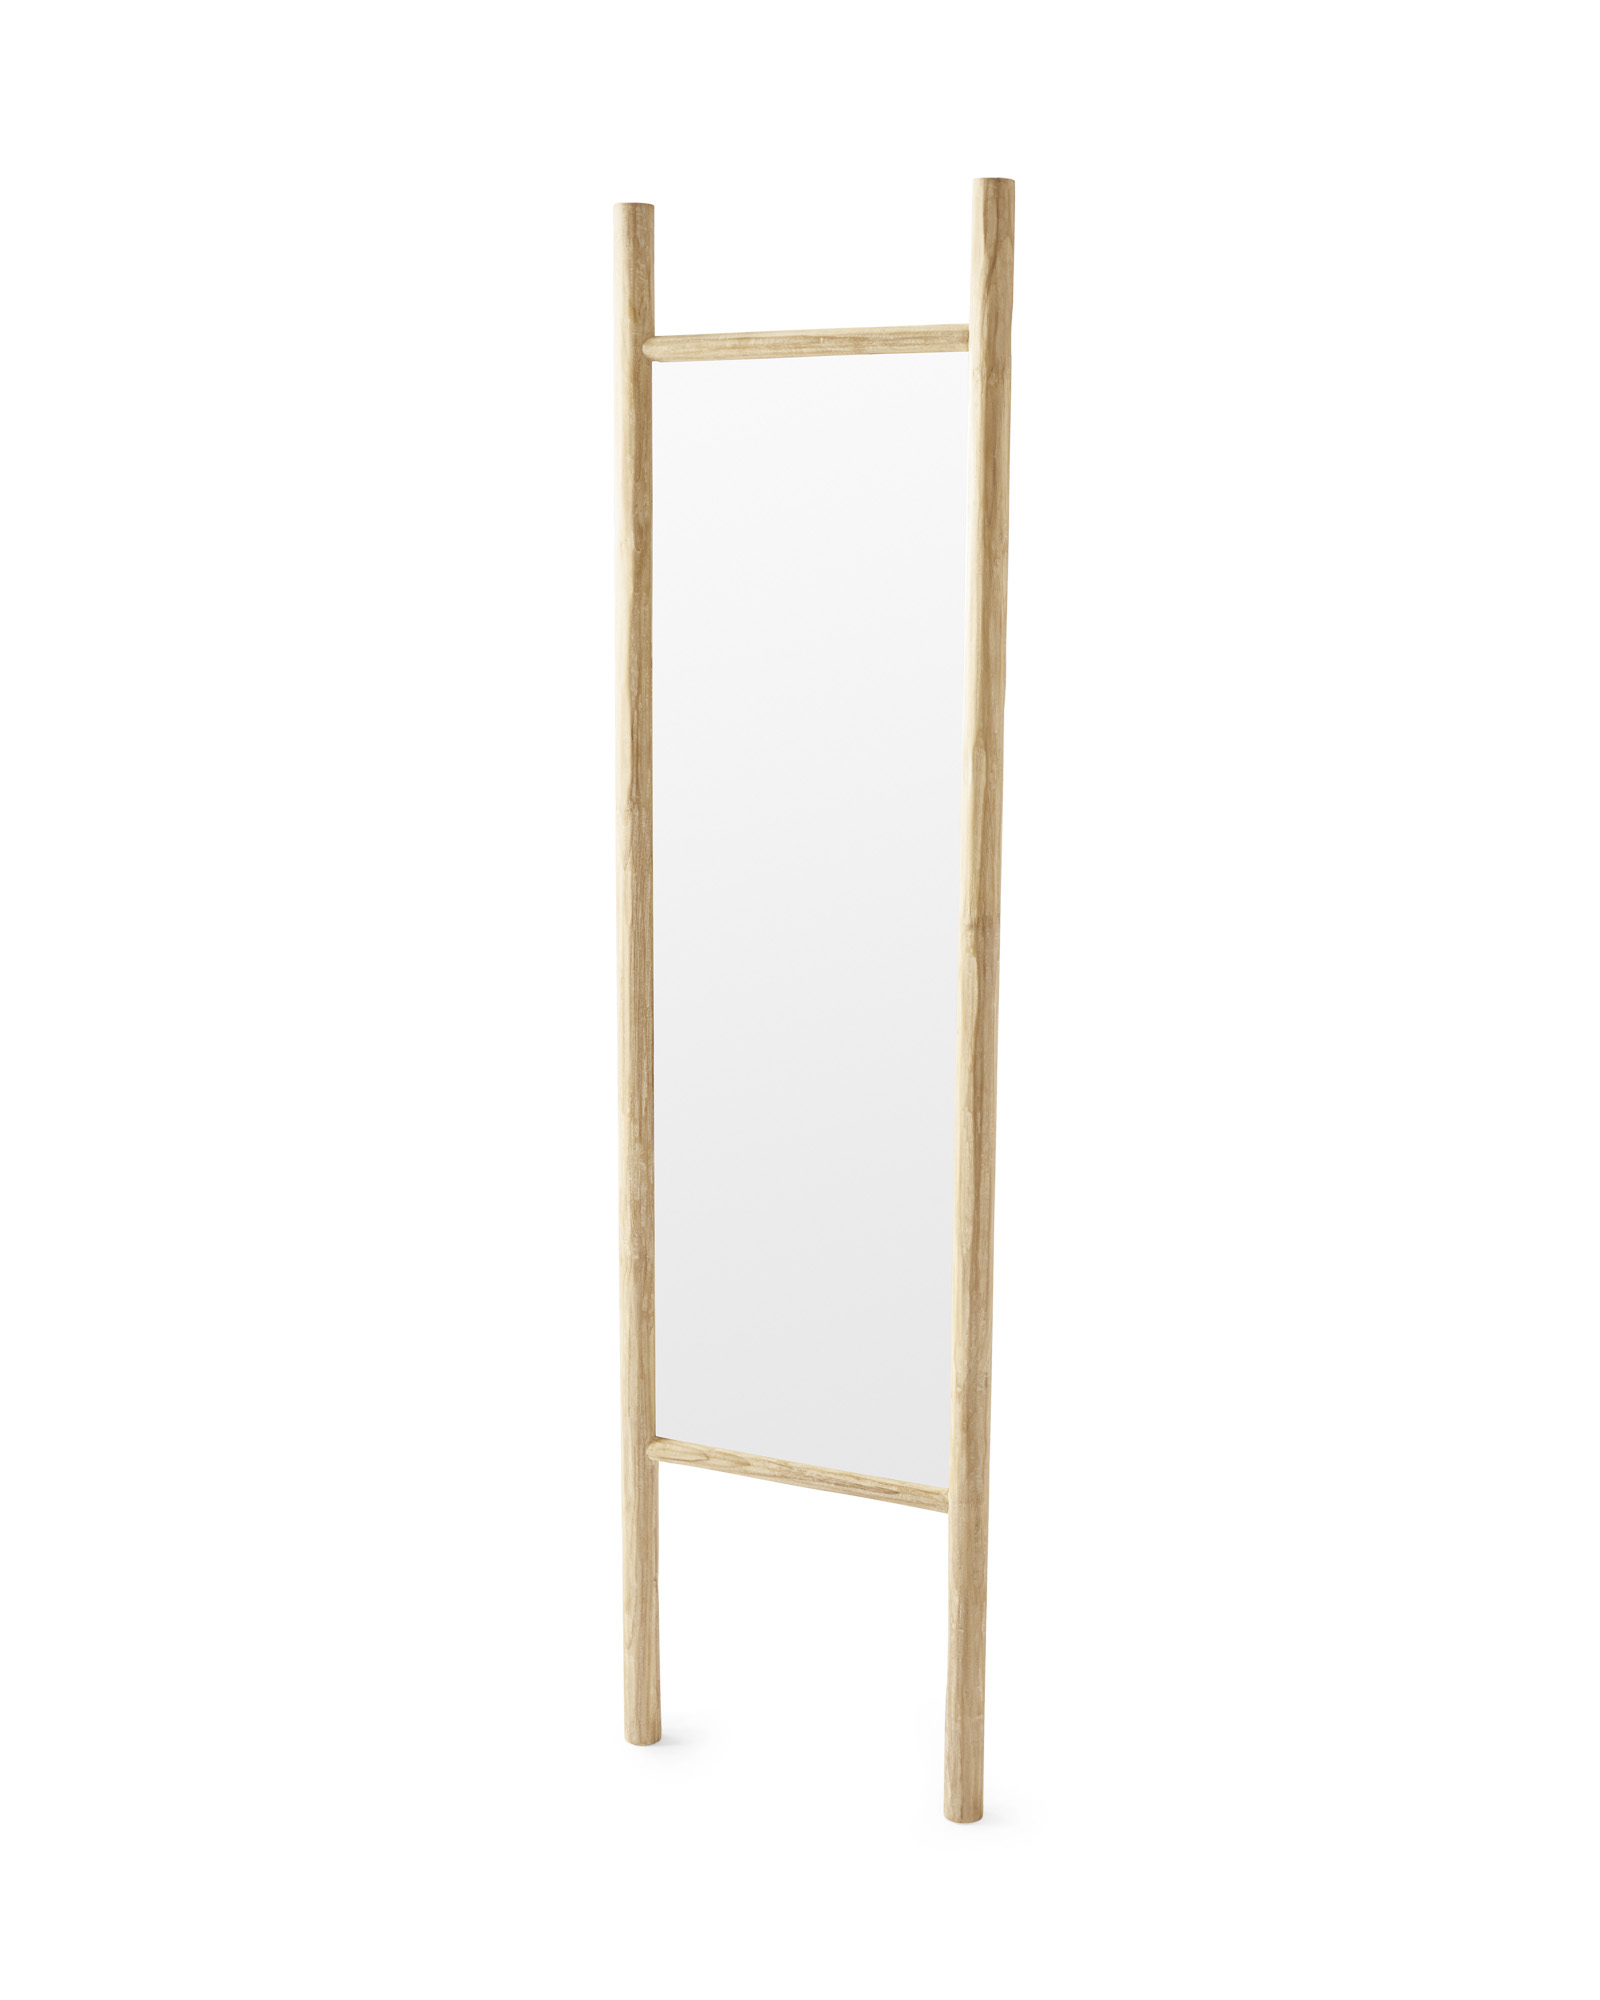 Mirror_Teak_Ladder_Natural_MV_Crop_SH.jpg